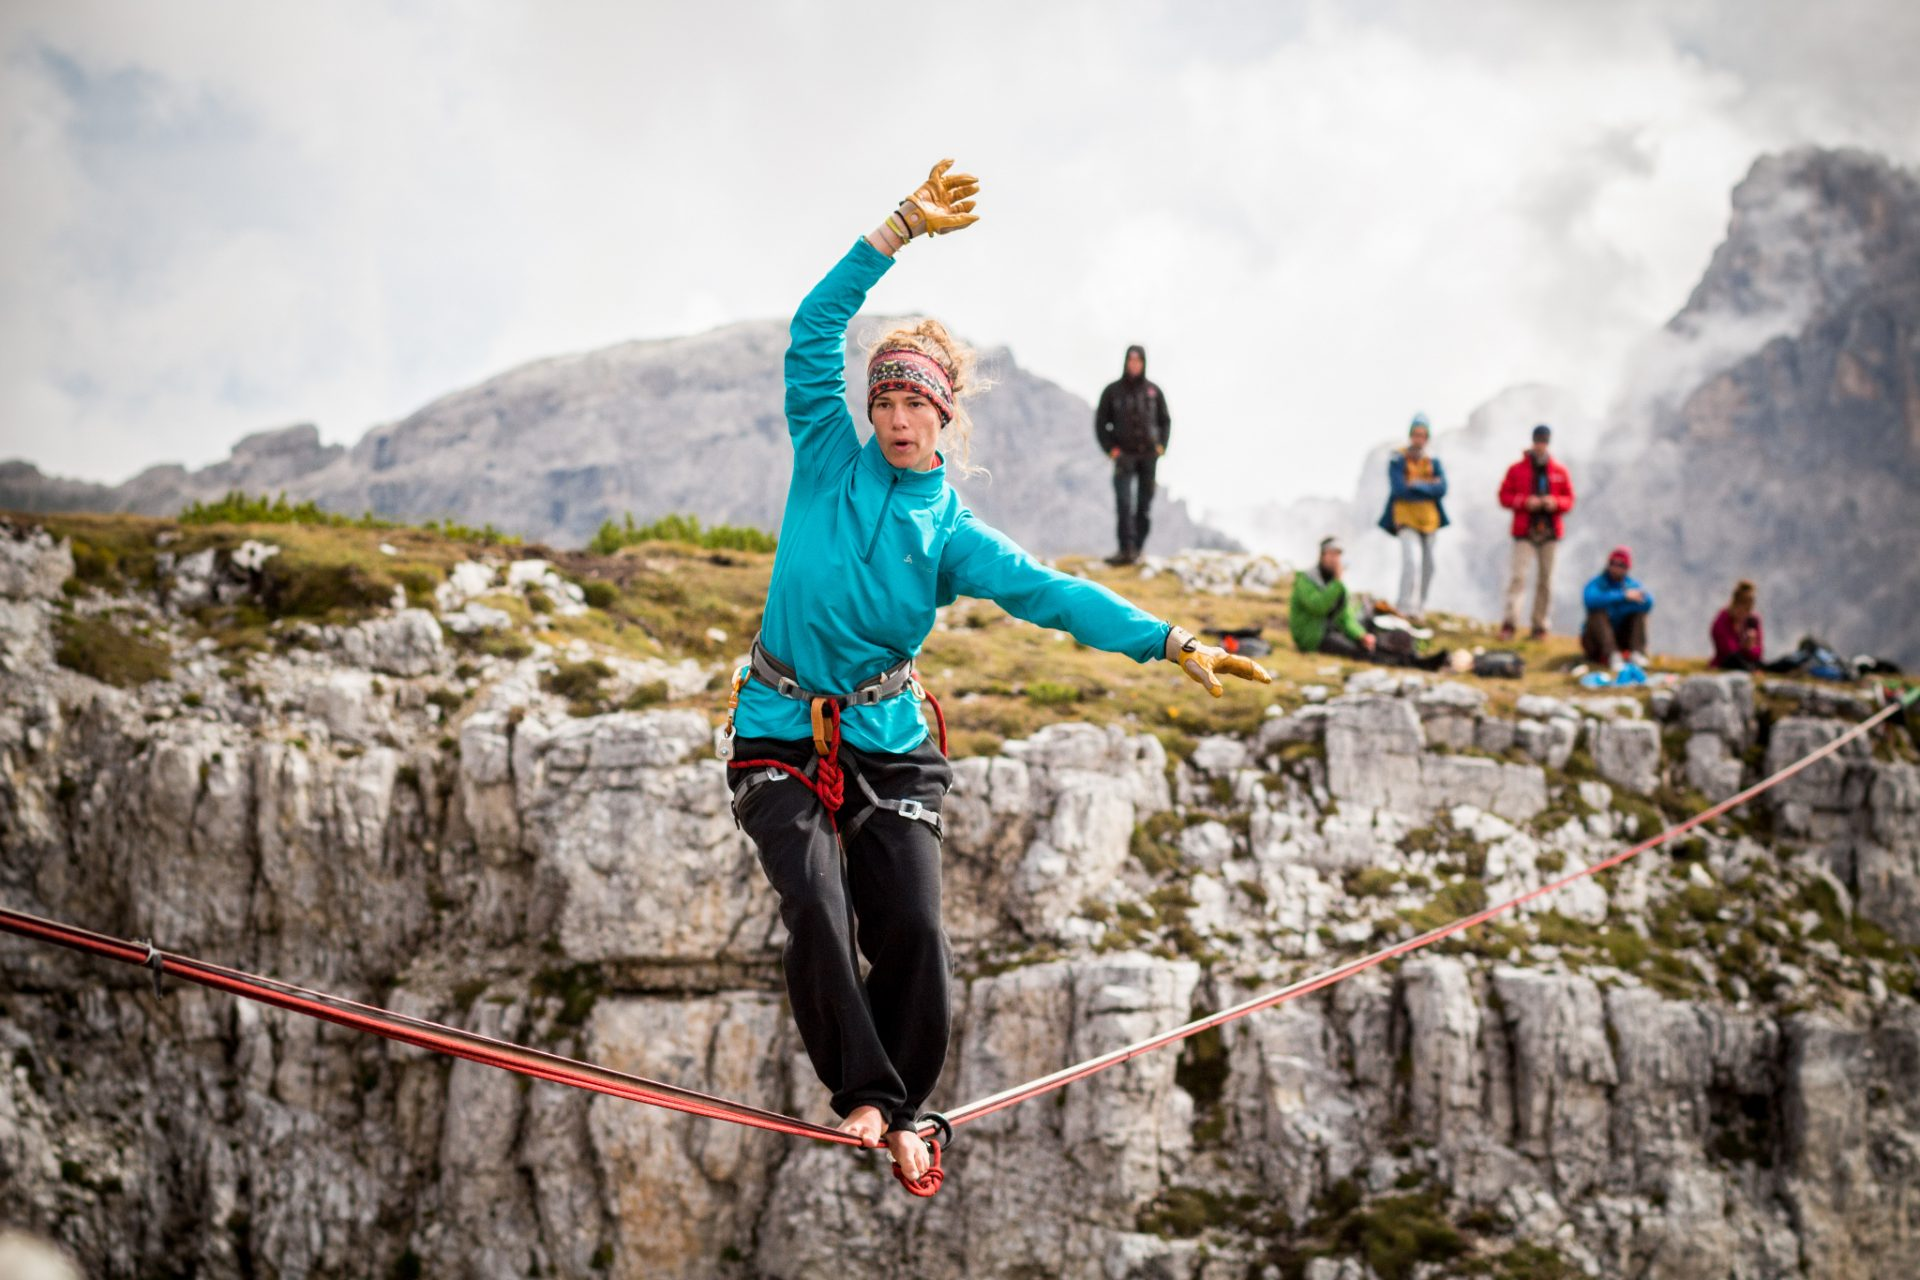 orosz_adam_outdoorinhales_highline_meeting_2014-monte_piana_dolomites_italy_04